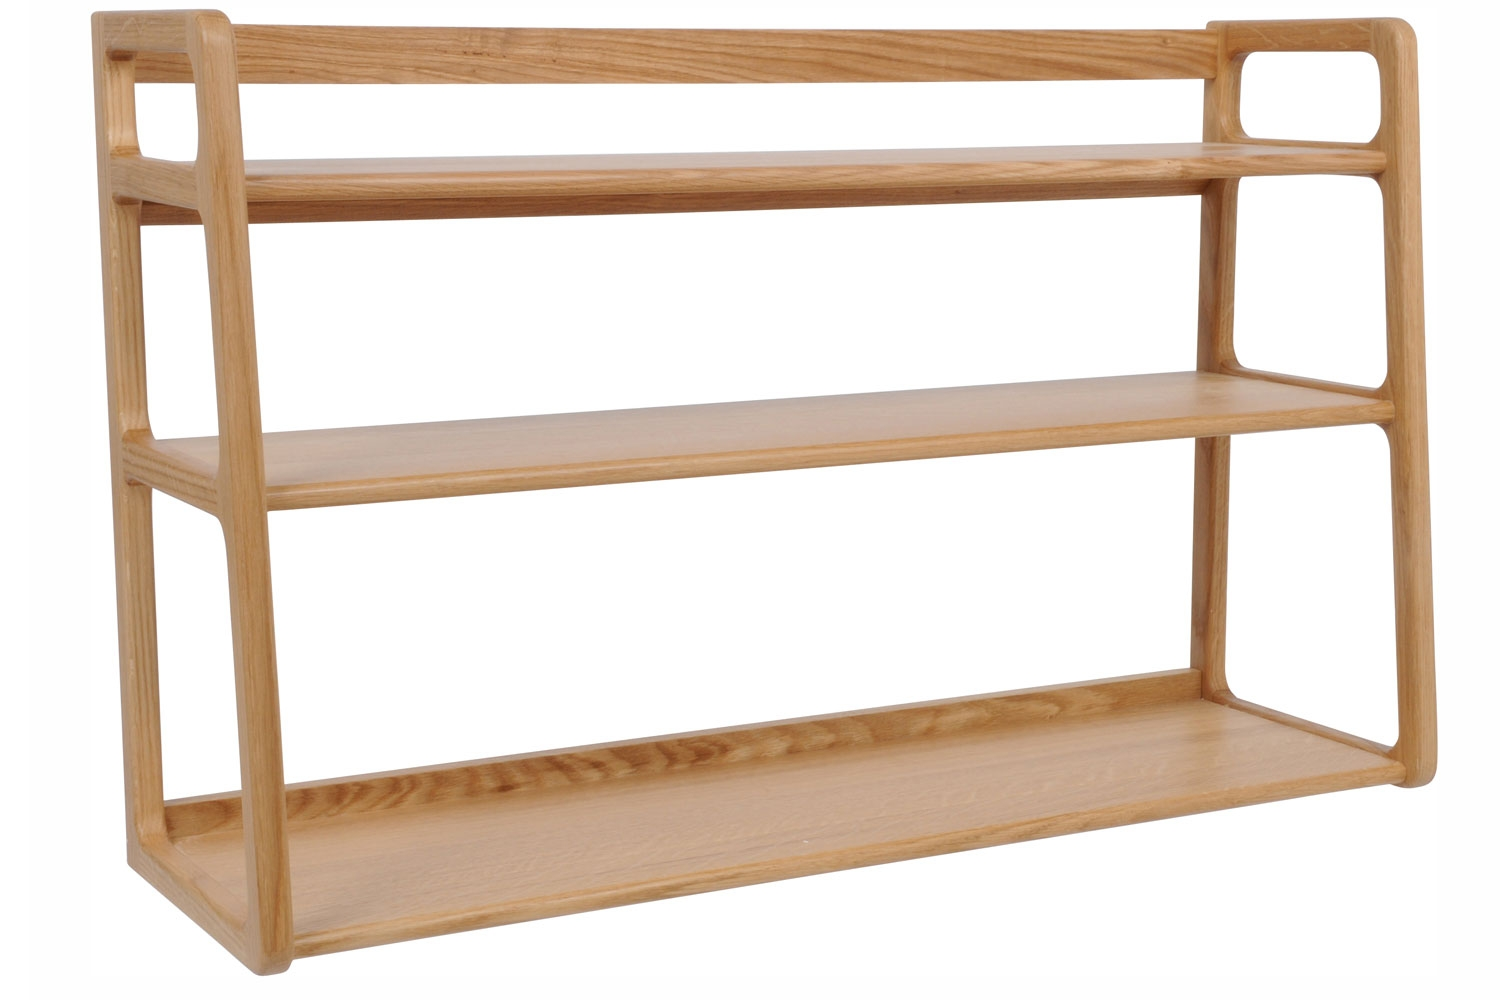 Creating A Wood Shelving Units Home Decorations Inside Wooden Shelving Units (#4 of 15)